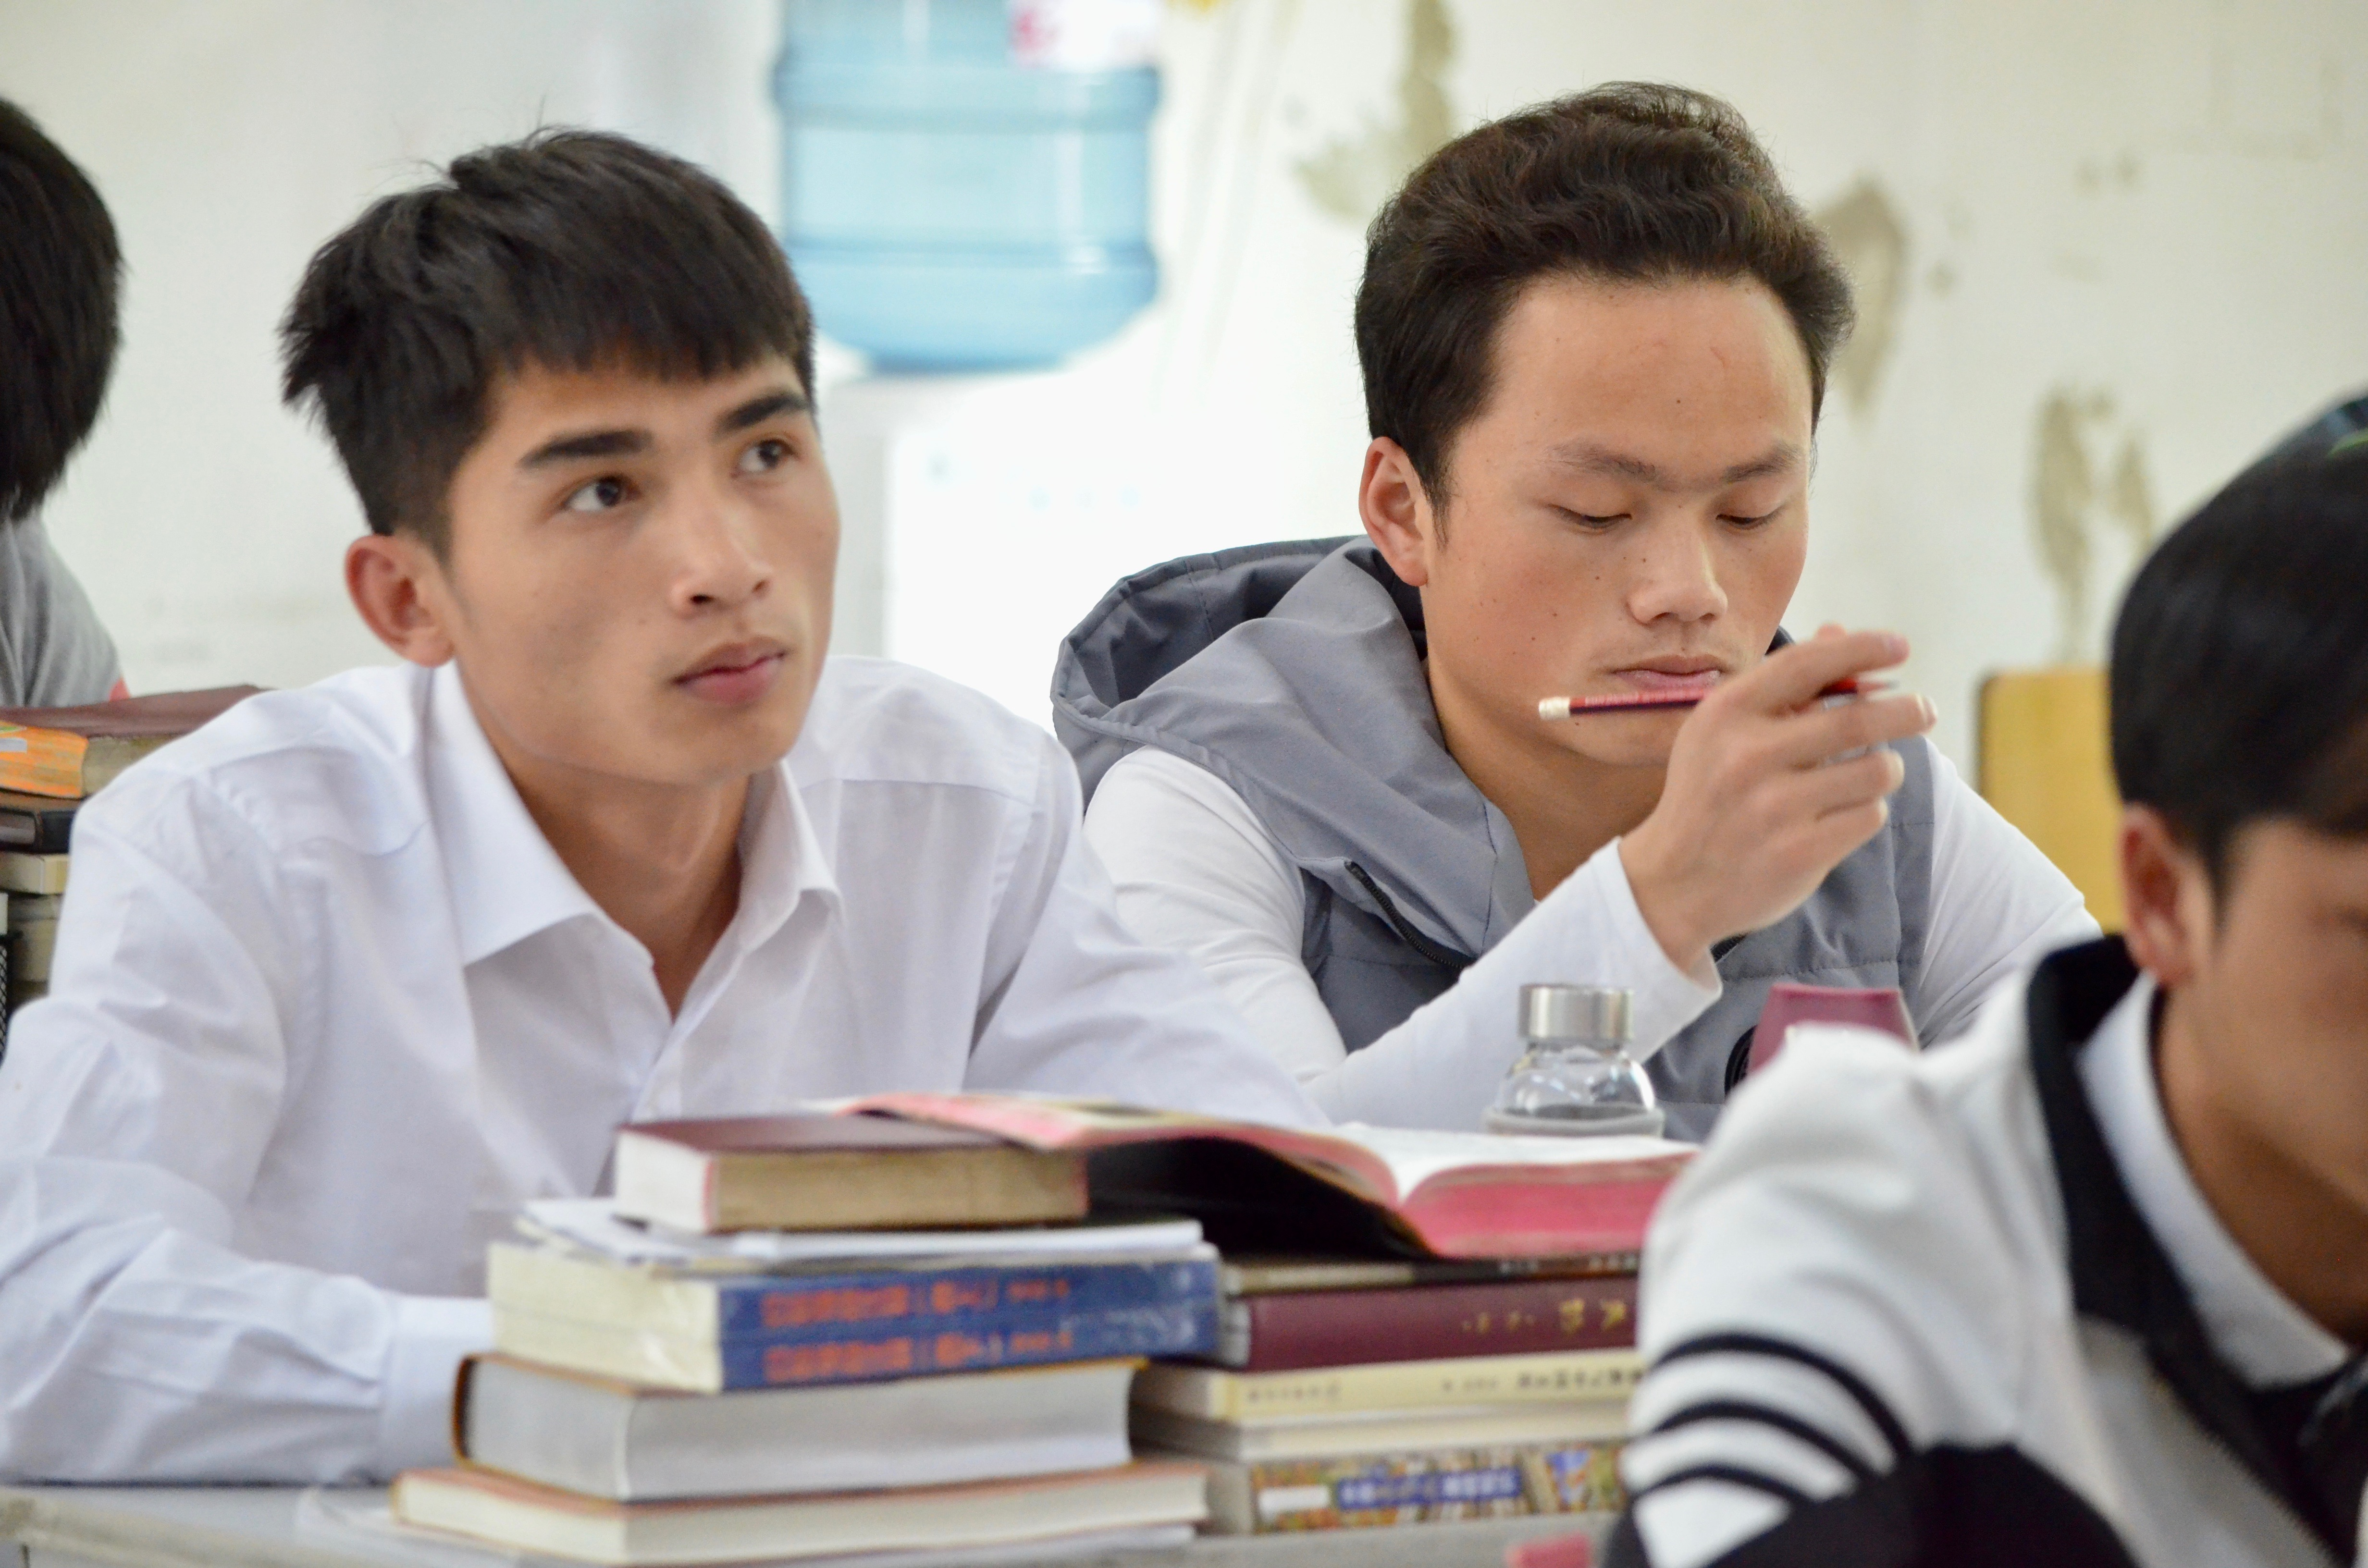 China Partner establishes new contact for youth training